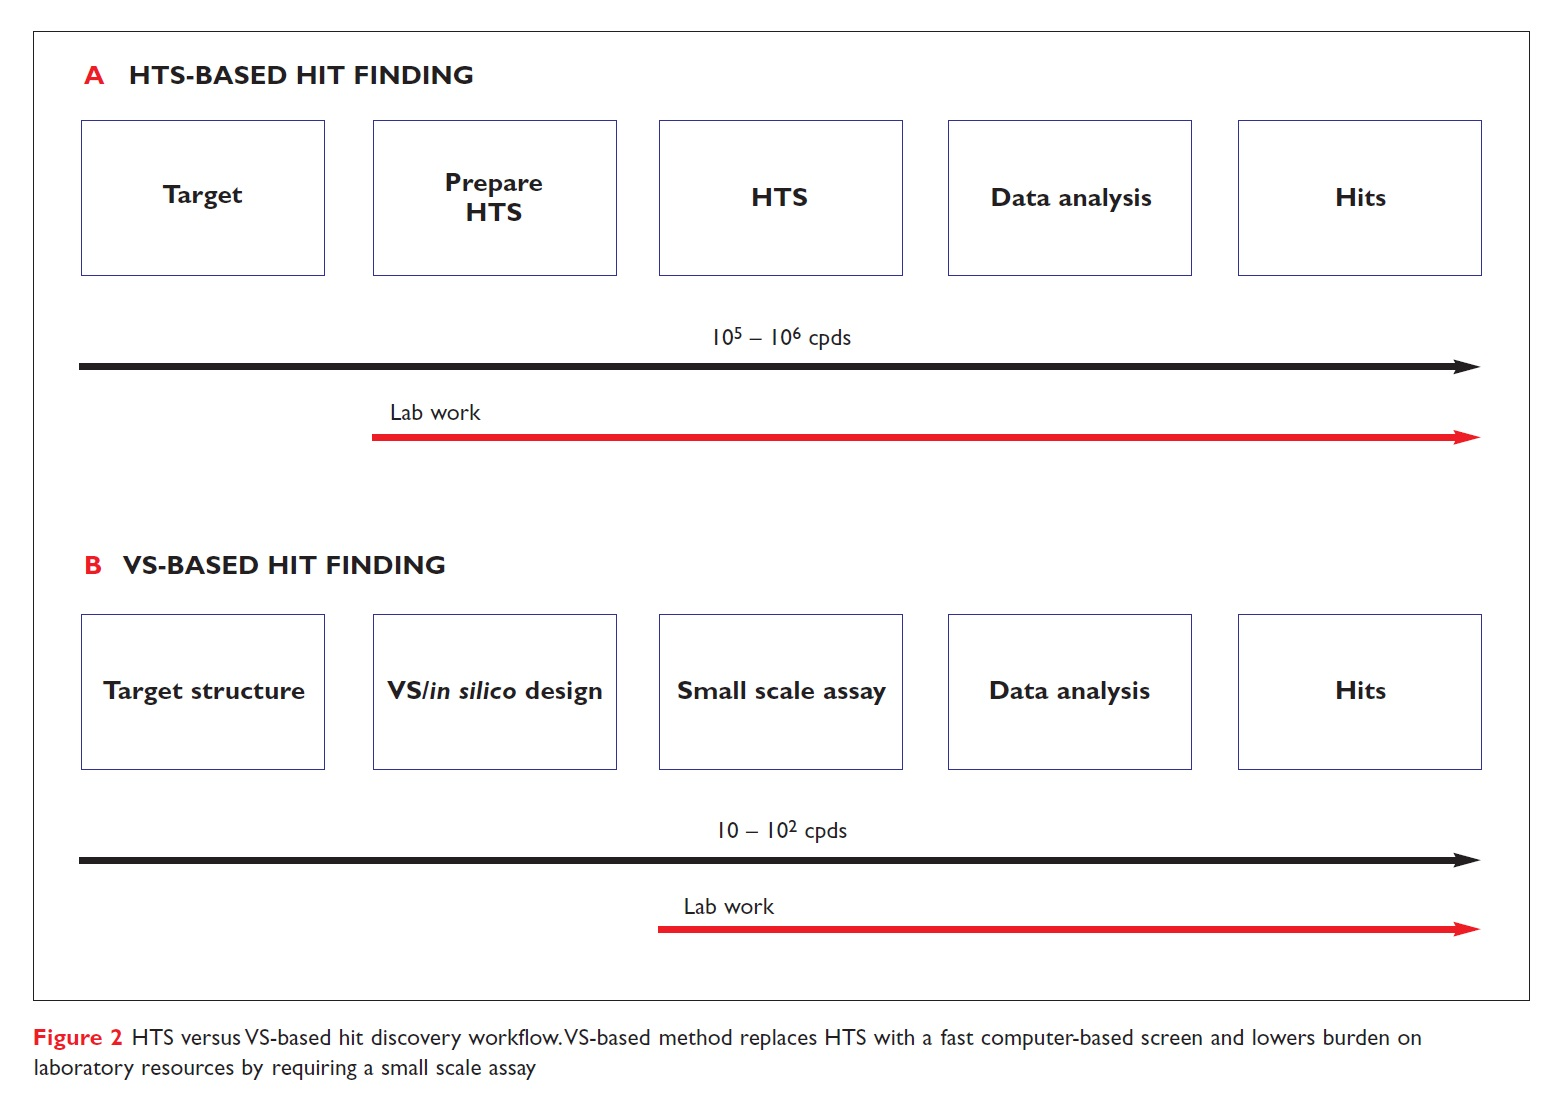 Figure 2 HTS versus VS-based hit discovery workflow